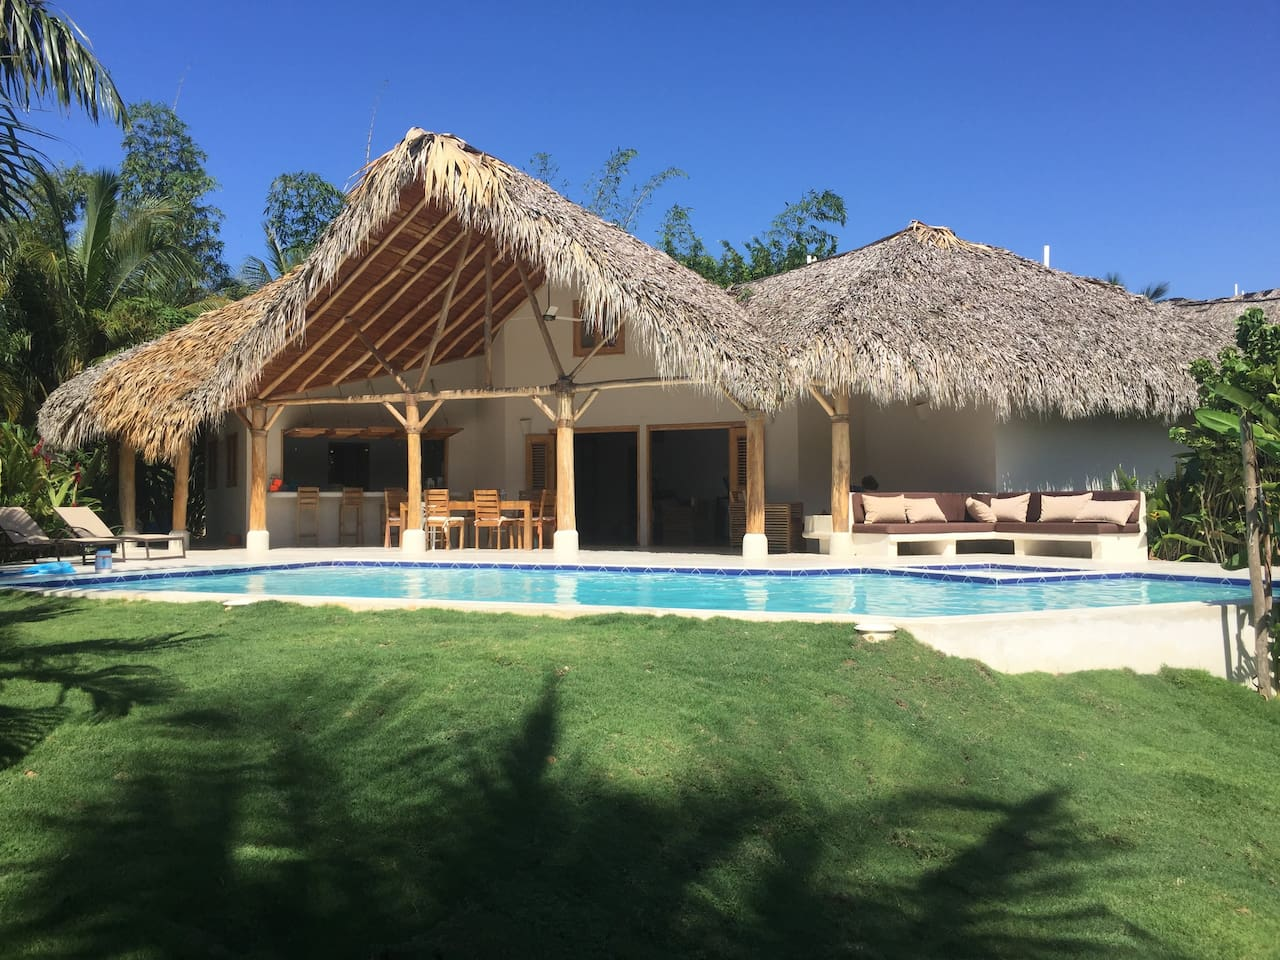 Main villa with 3 bedrooms, 3 bathrooms, large kitchen, living room with Netflix TV...